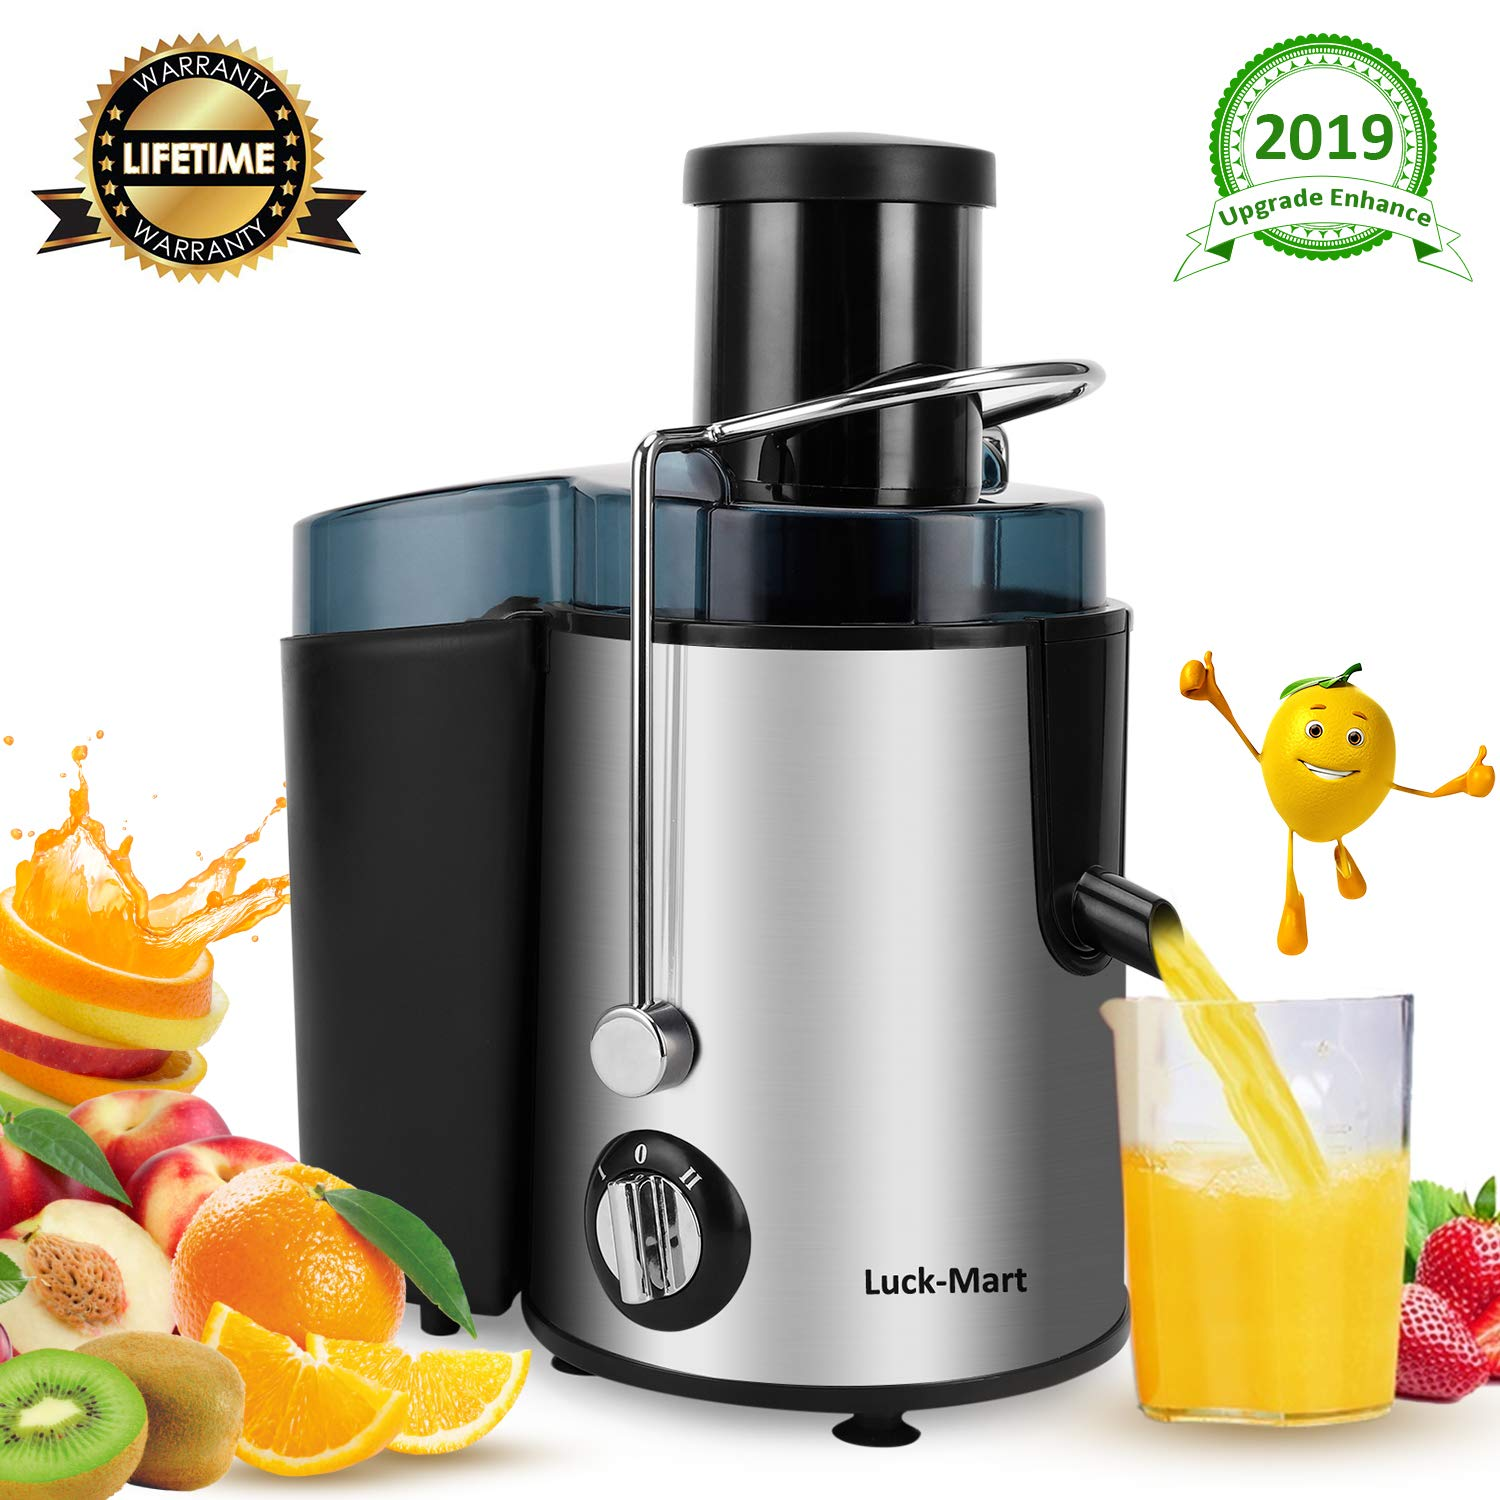 Juicer, Juicer Machine Real 3'' Whole Fruit and Vegetable Feeder Chute Juice Extractor, Dual Speeds Centrifugal Juicer, Anti-drip, Stainless Steel and BPA-Free